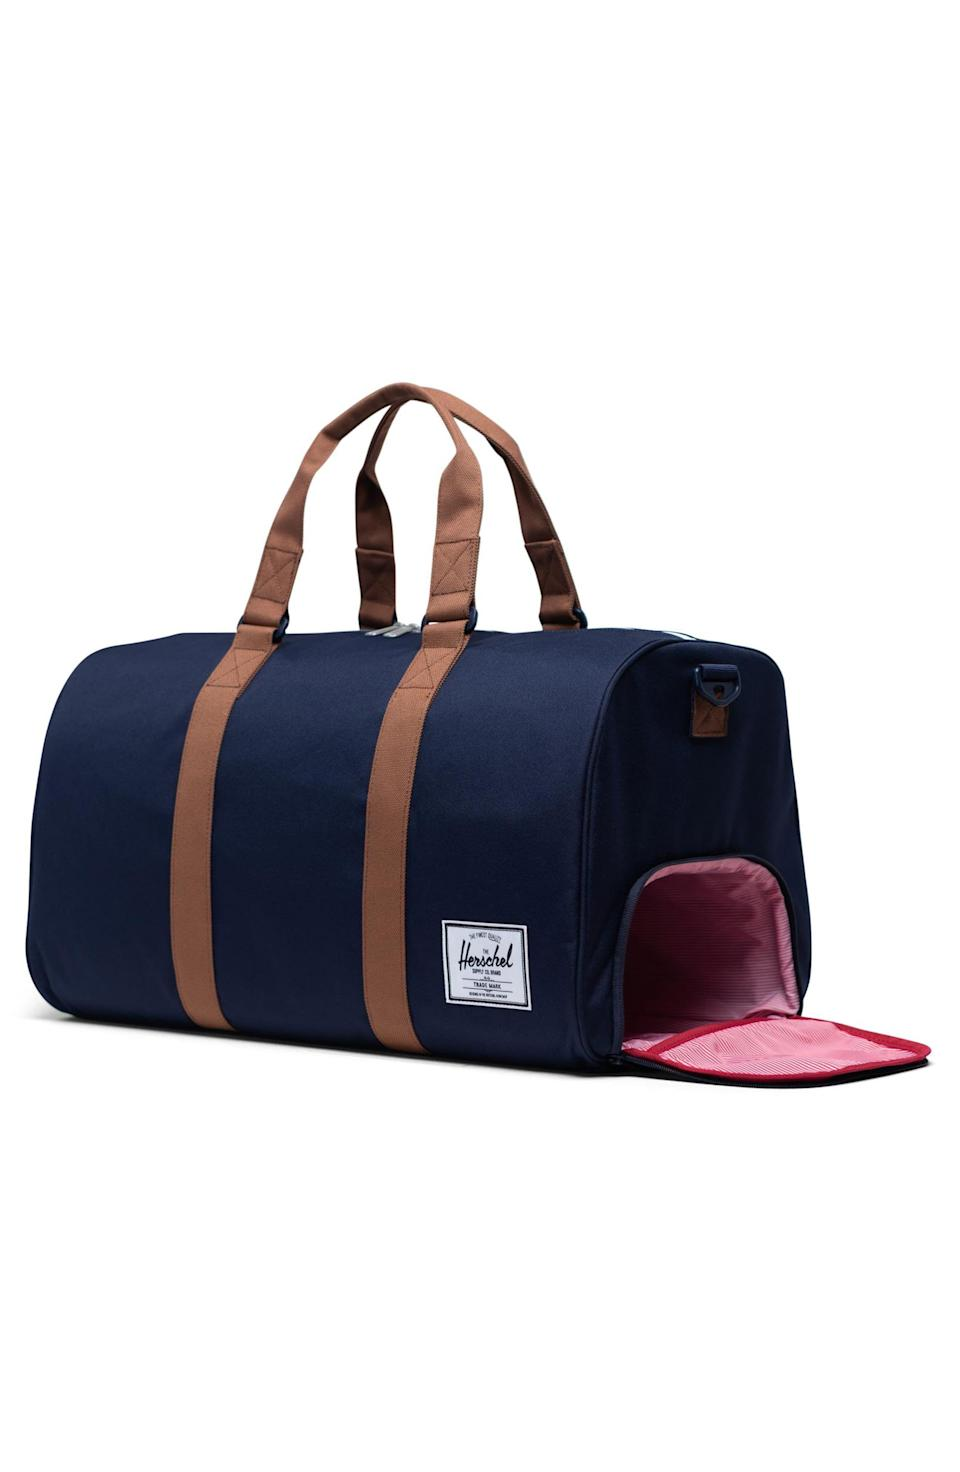 "<p><strong>HERSCHEL SUPPLY CO.</strong></p><p>nordstrom.com</p><p><strong>$90.00</strong></p><p><a href=""https://go.redirectingat.com?id=74968X1596630&url=https%3A%2F%2Fwww.nordstrom.com%2Fs%2Fherschel-supply-co-novel-duffle-bag%2F5293829&sref=https%3A%2F%2Fwww.cosmopolitan.com%2Fstyle-beauty%2Ffashion%2Fg22628672%2Fbest-gifts-husband%2F"" rel=""nofollow noopener"" target=""_blank"" data-ylk=""slk:Shop Now"" class=""link rapid-noclick-resp"">Shop Now</a></p><p>This lightweight duffle bag is the perfect size for going to the gym or taking a weekend trip. Bonus points for having a separate compartment for shoes. </p>"